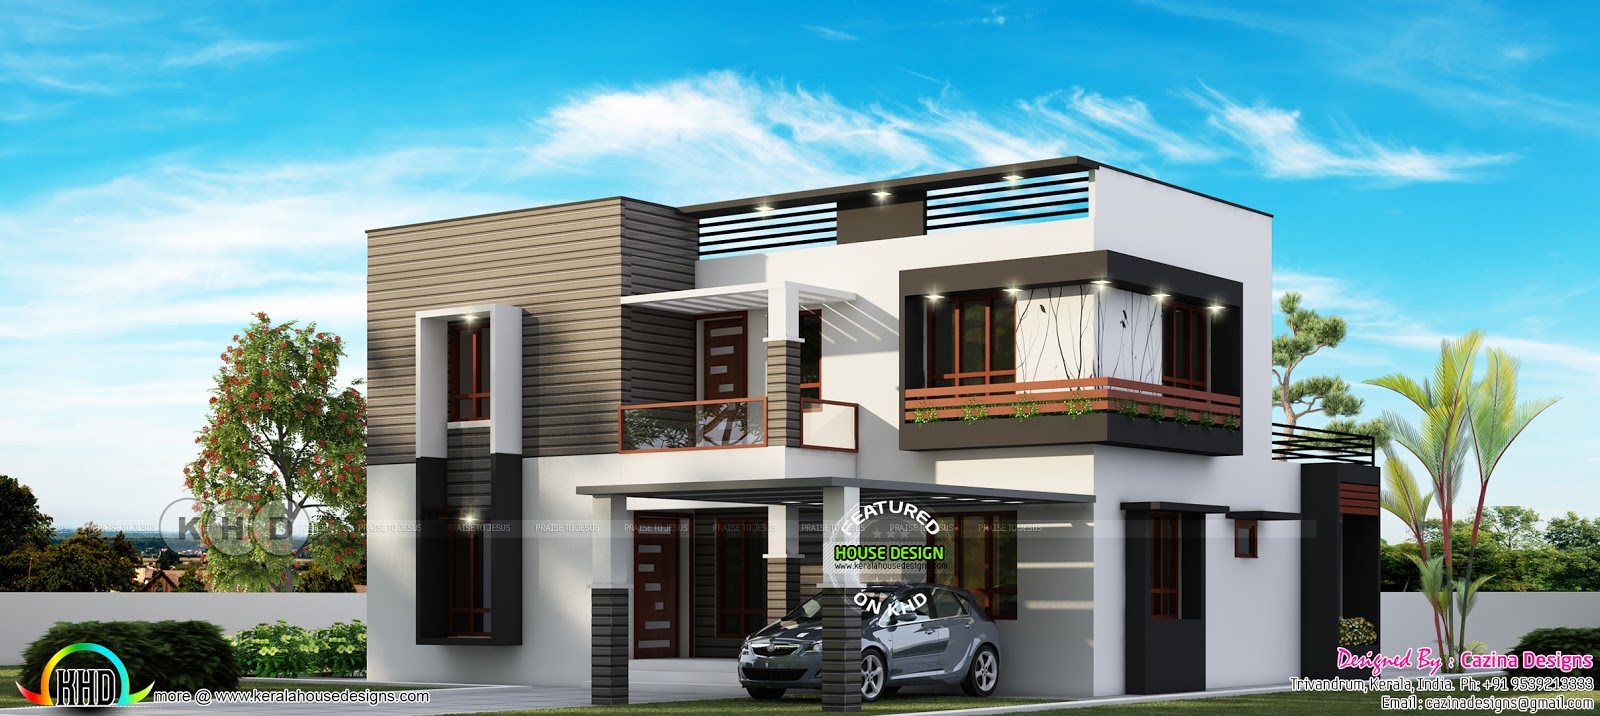 4 Bedroom Modern Flat Roof House 2600 Sq Ft Kerala Home